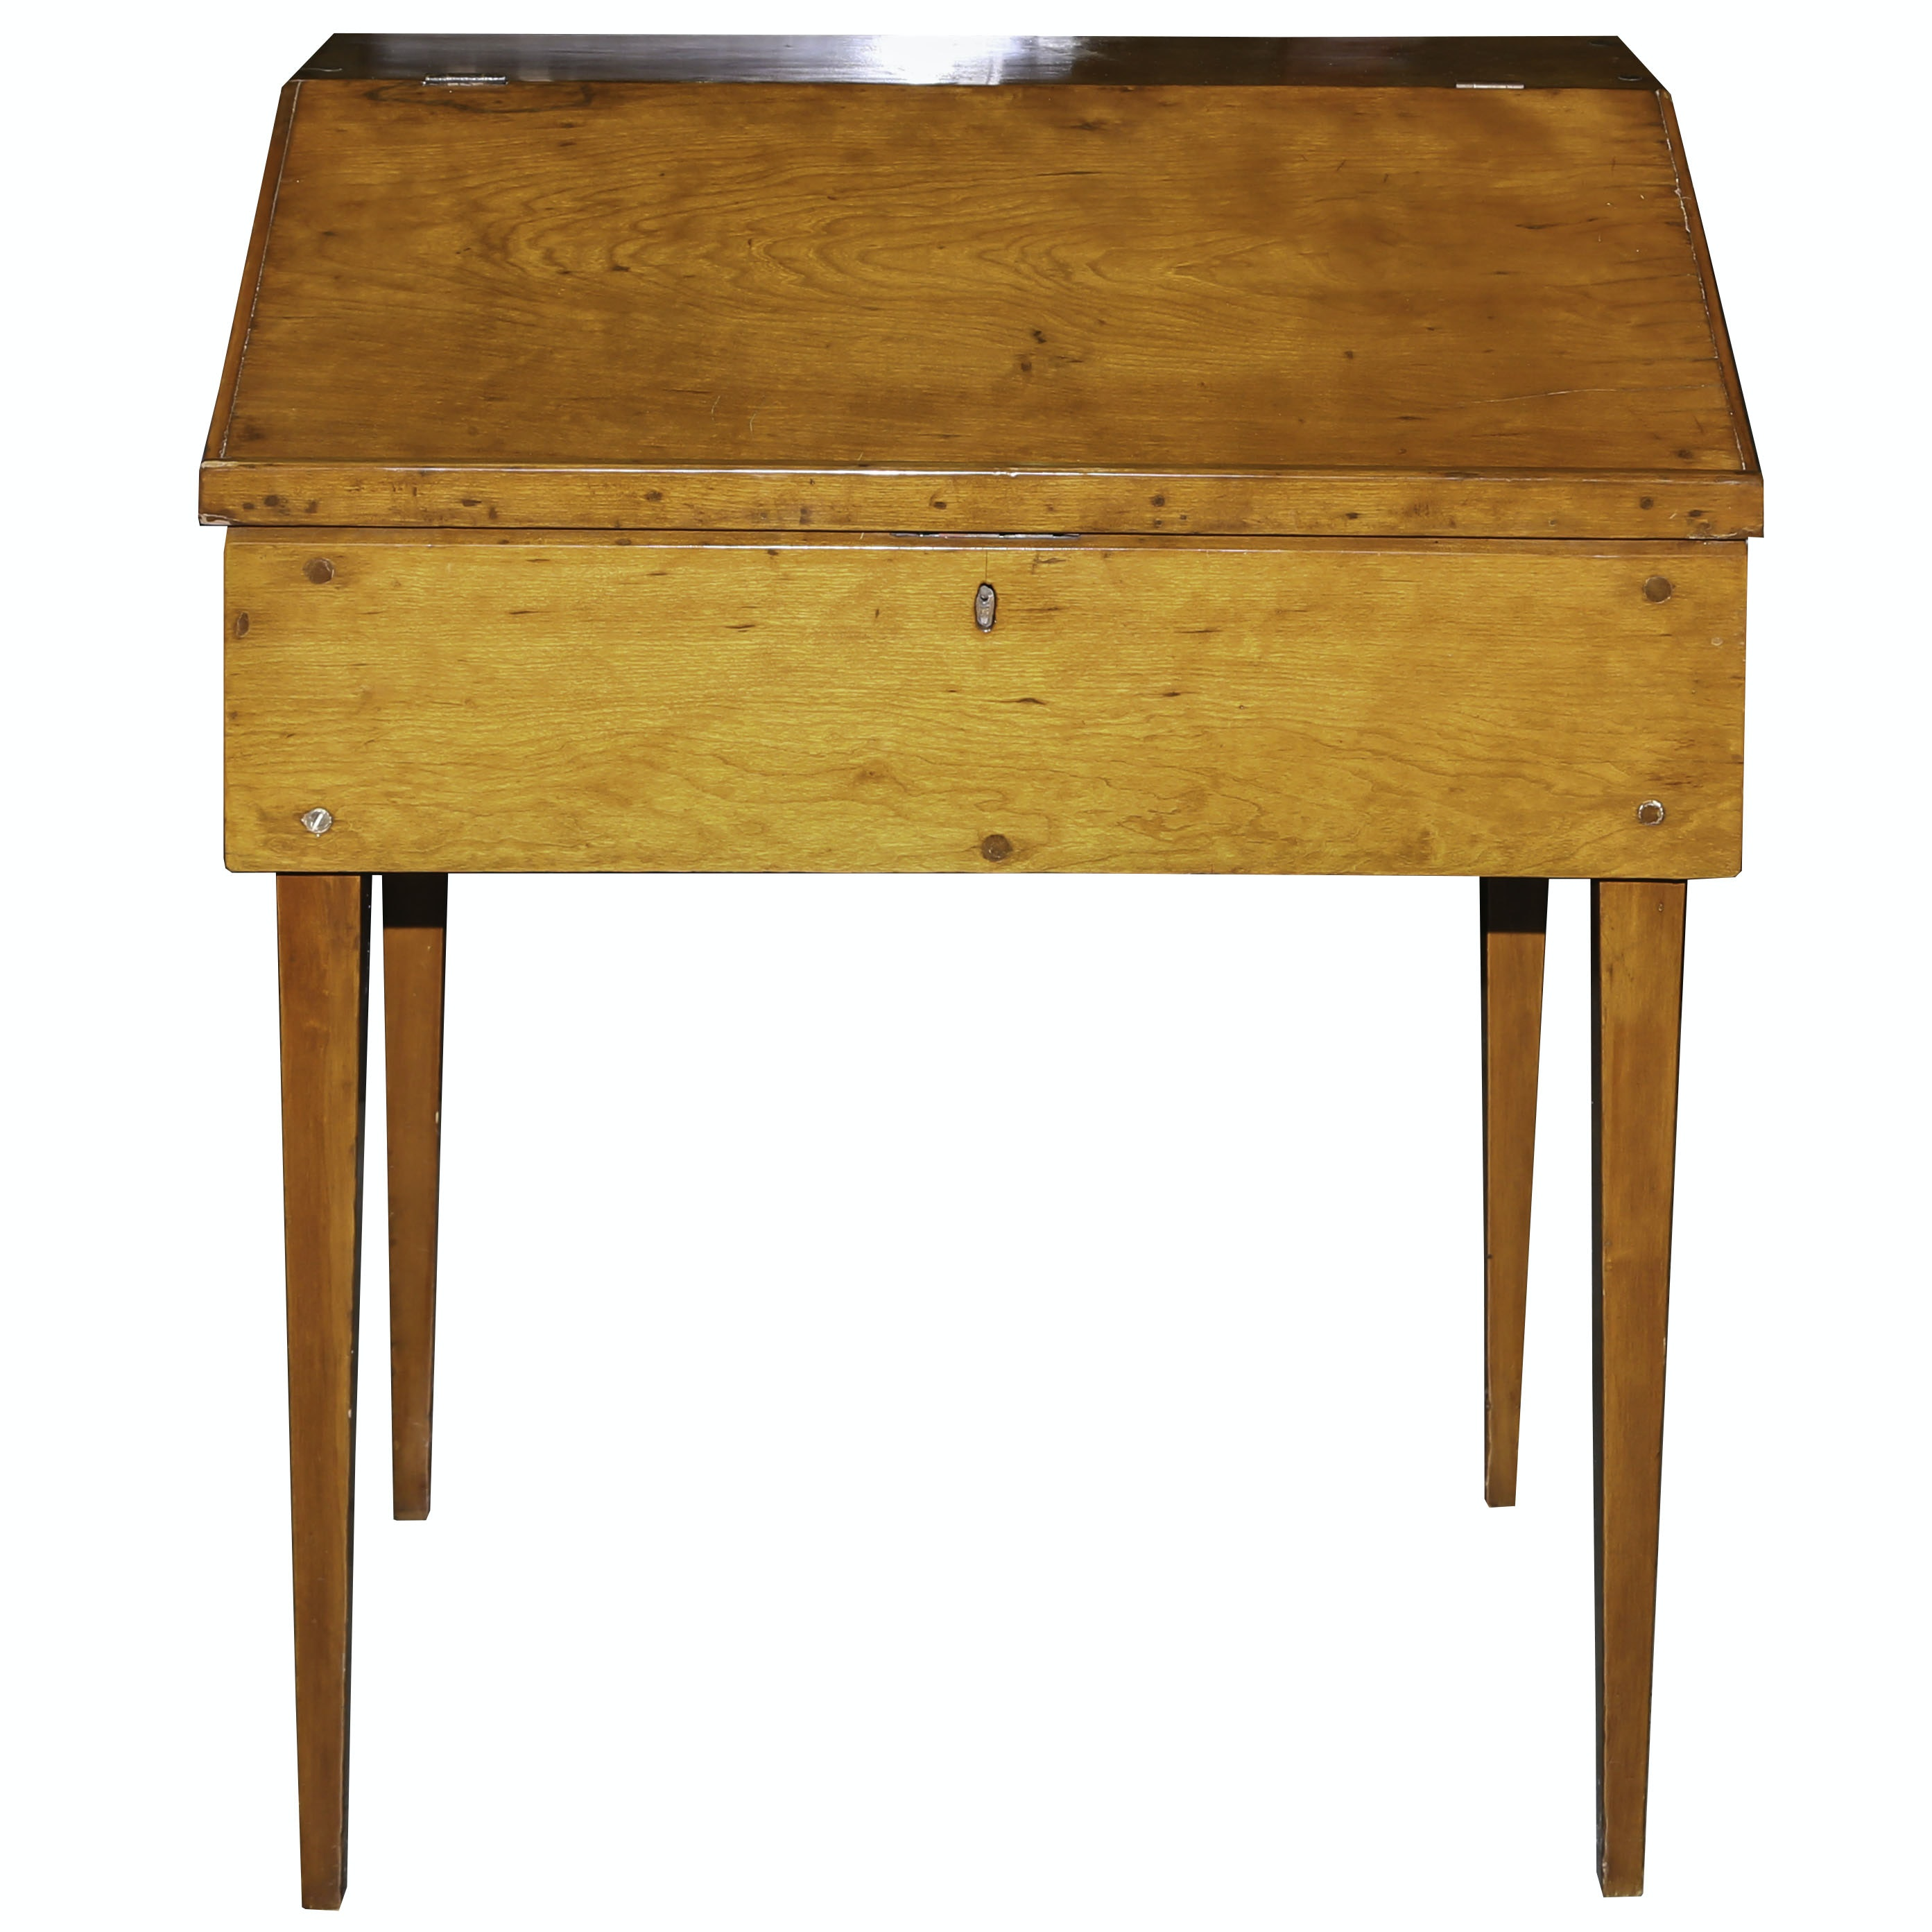 Vintage Pine Slant Top Book Table